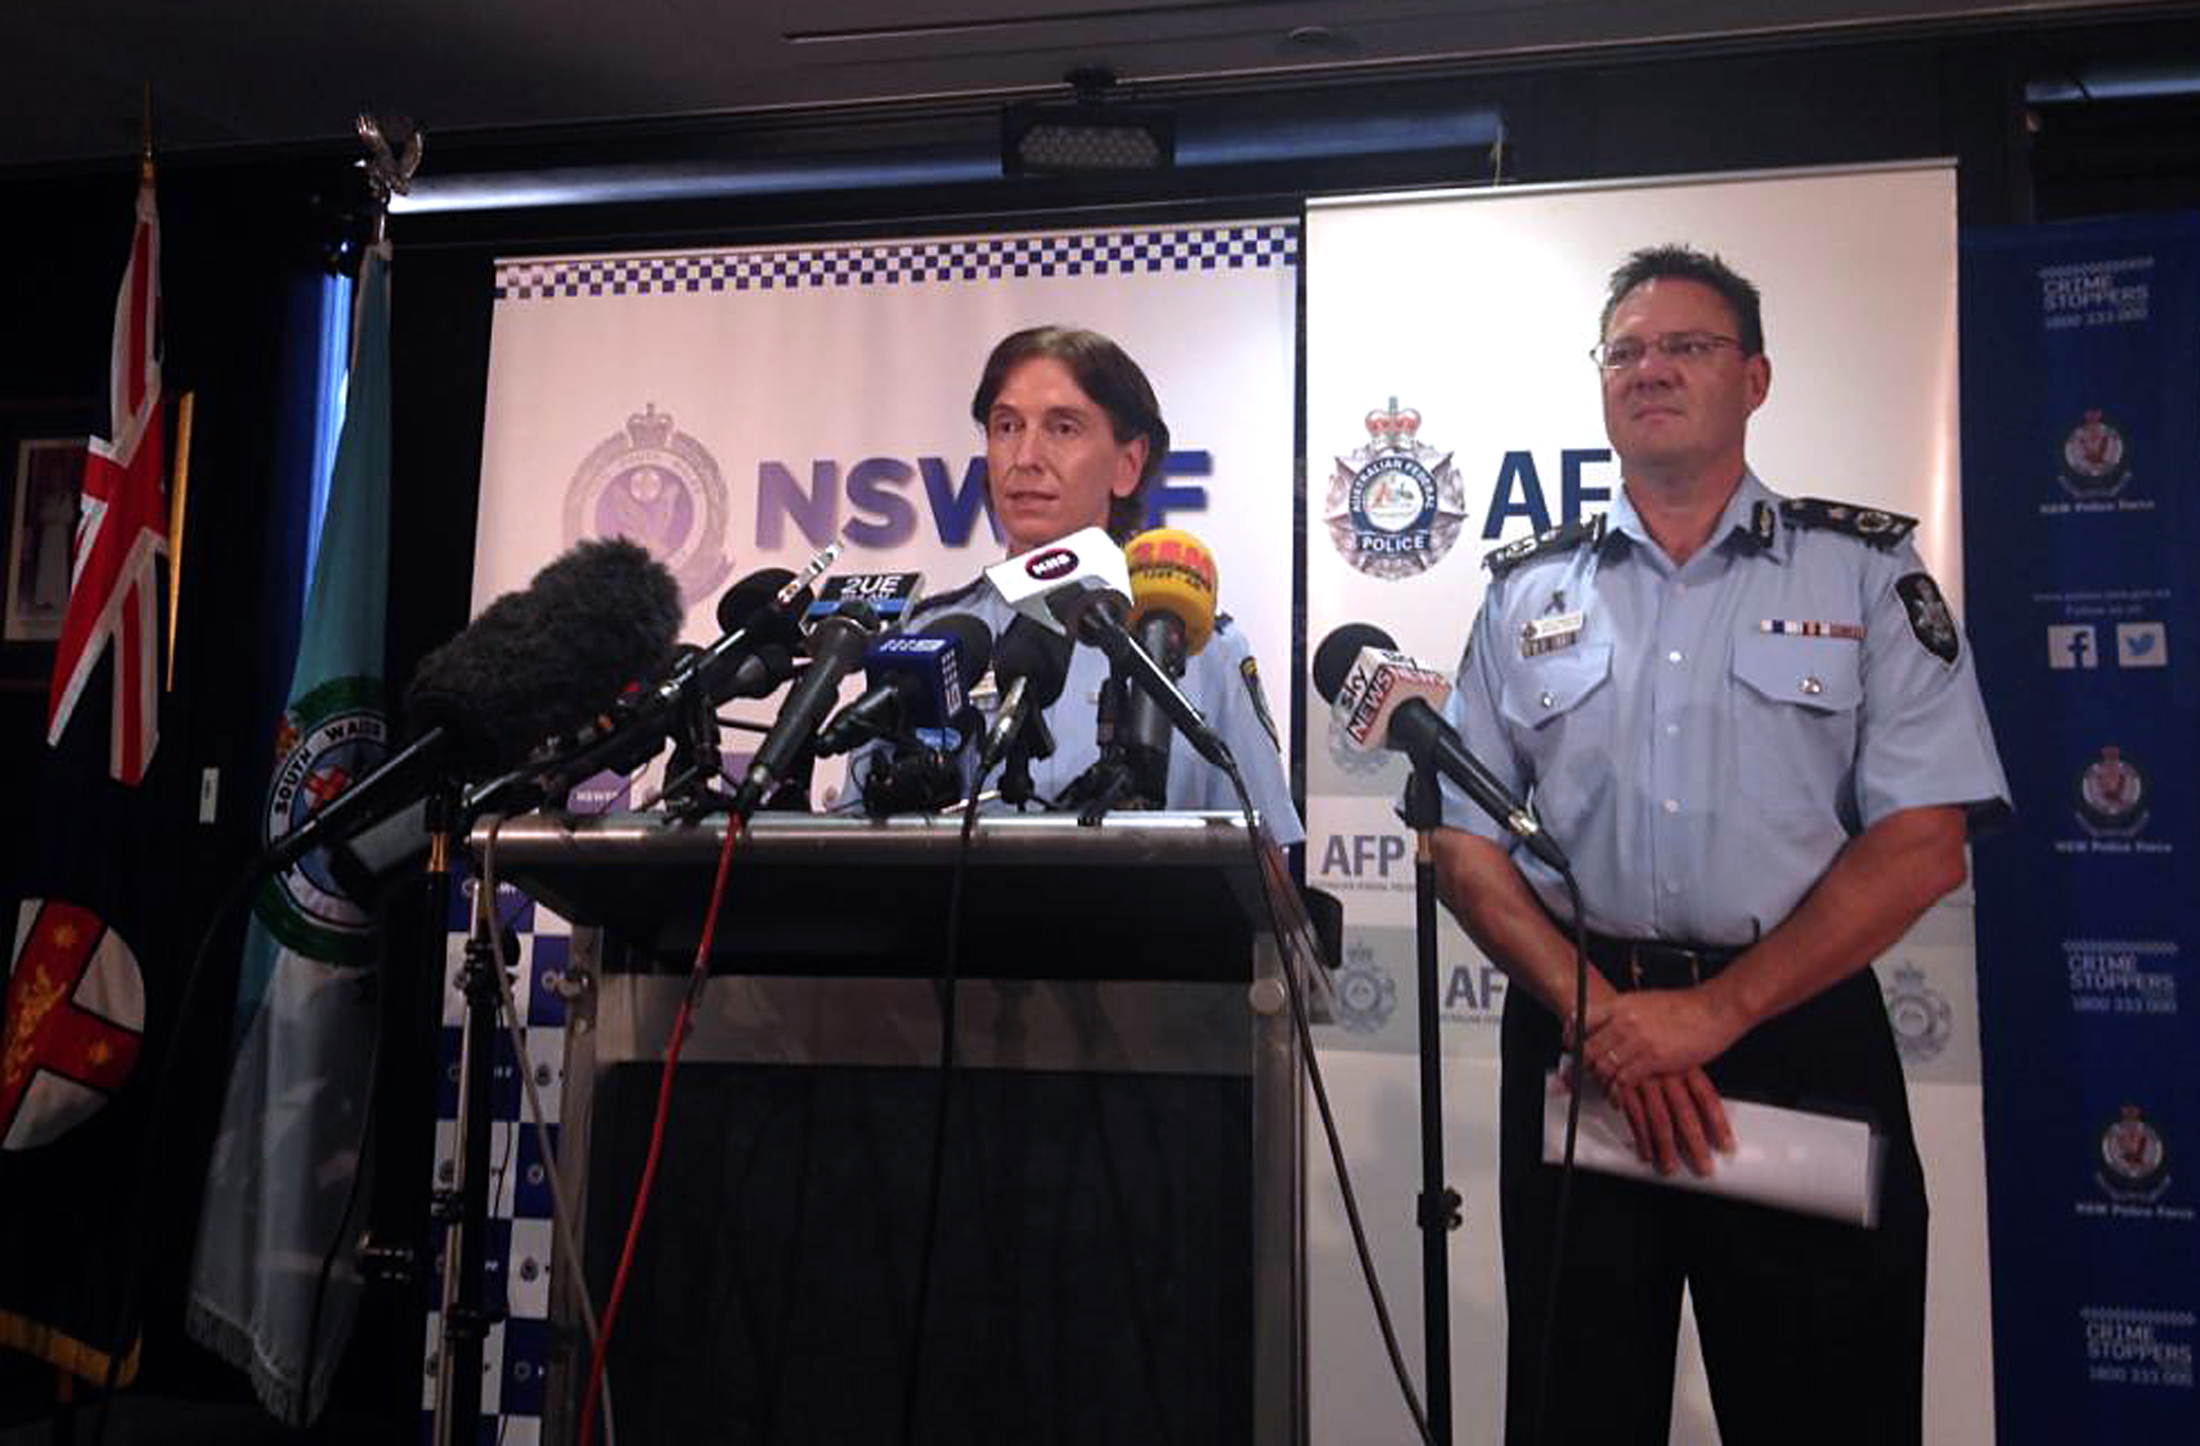 Australian Federal Police Deputy Commissioner Michael Phelan, right, listens as New South Wales Deputy Police Commissioner Catherine Burn speaks during a media conference in Sydney on Feb. 11, 2015